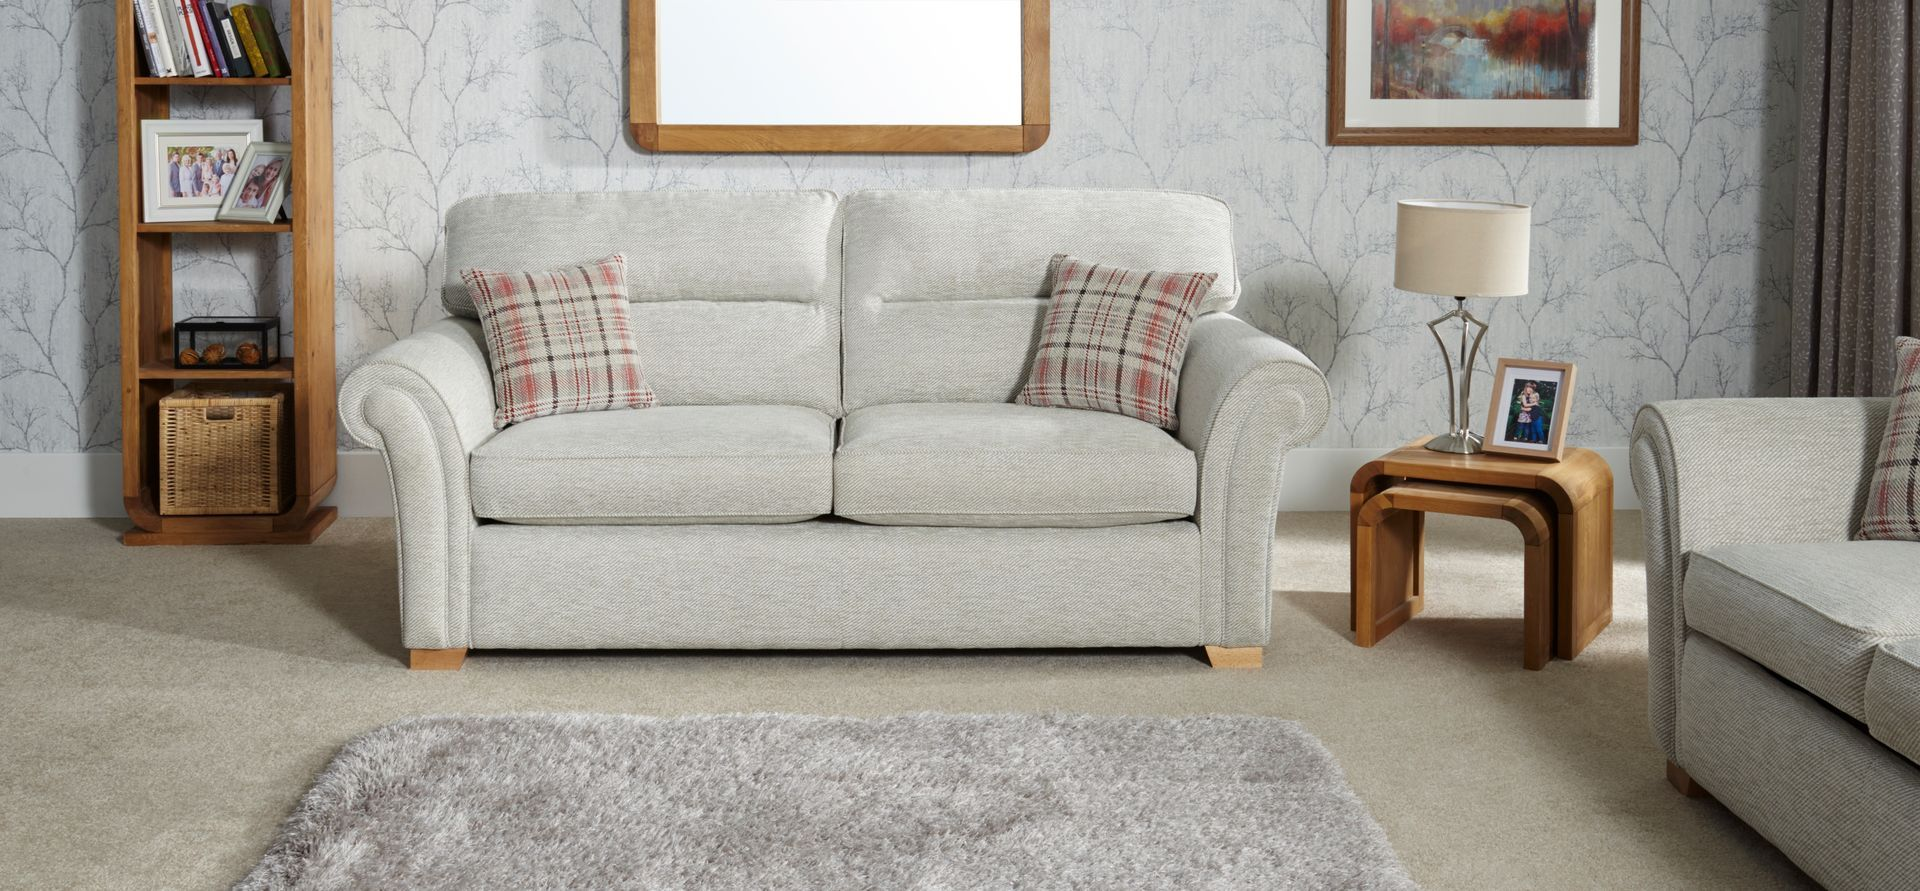 Chiltern 3 Seater Standard Back Fabric Sofa Scs Snuggle Chairs Sofa Shop Seater Sofa